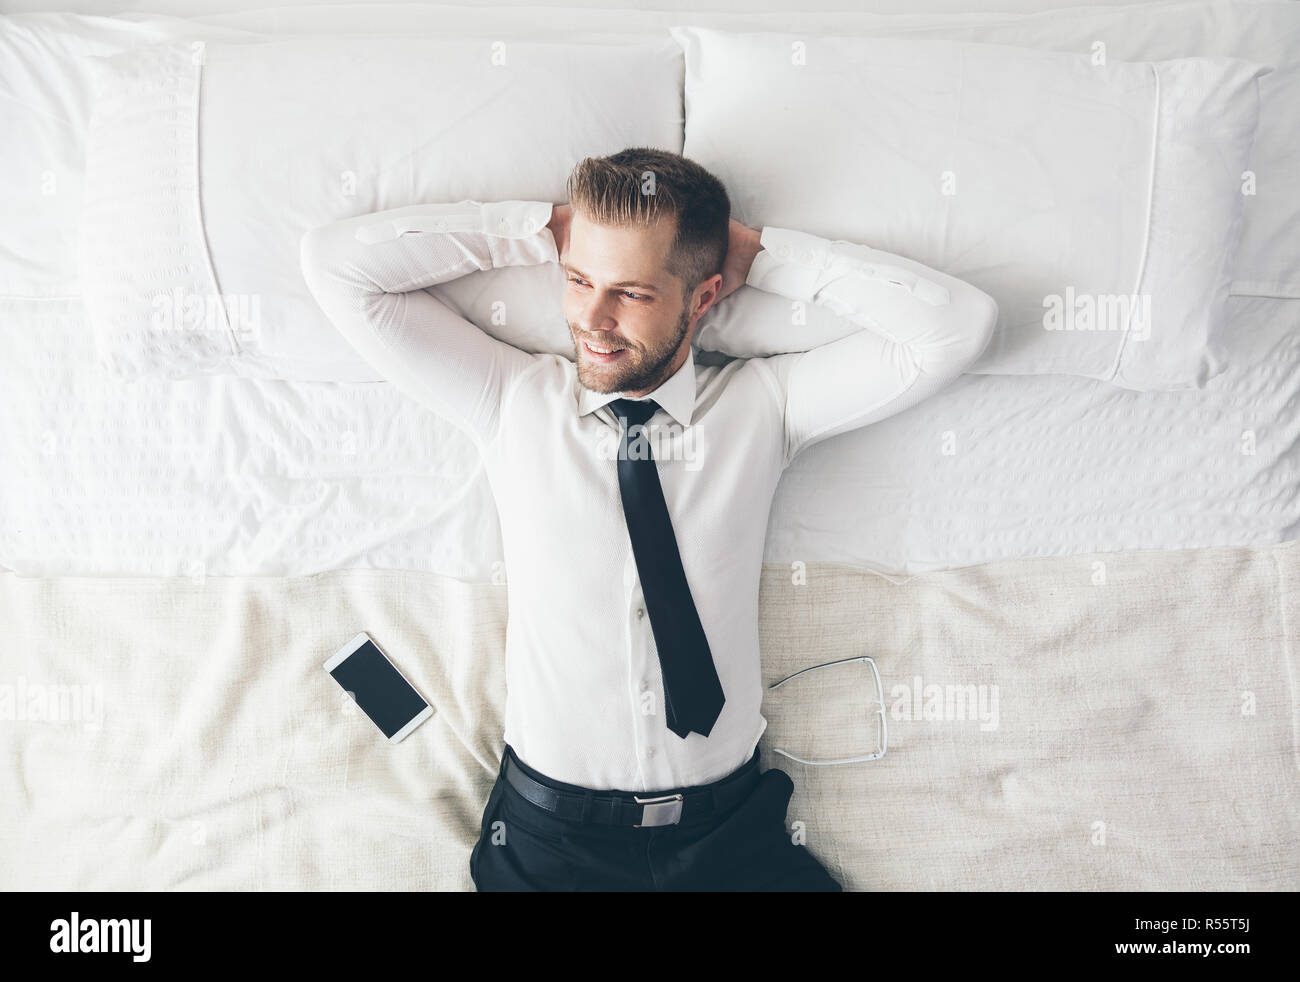 Top view. Handsome businessman relaxing on bed after a tough day at work - Stock Image